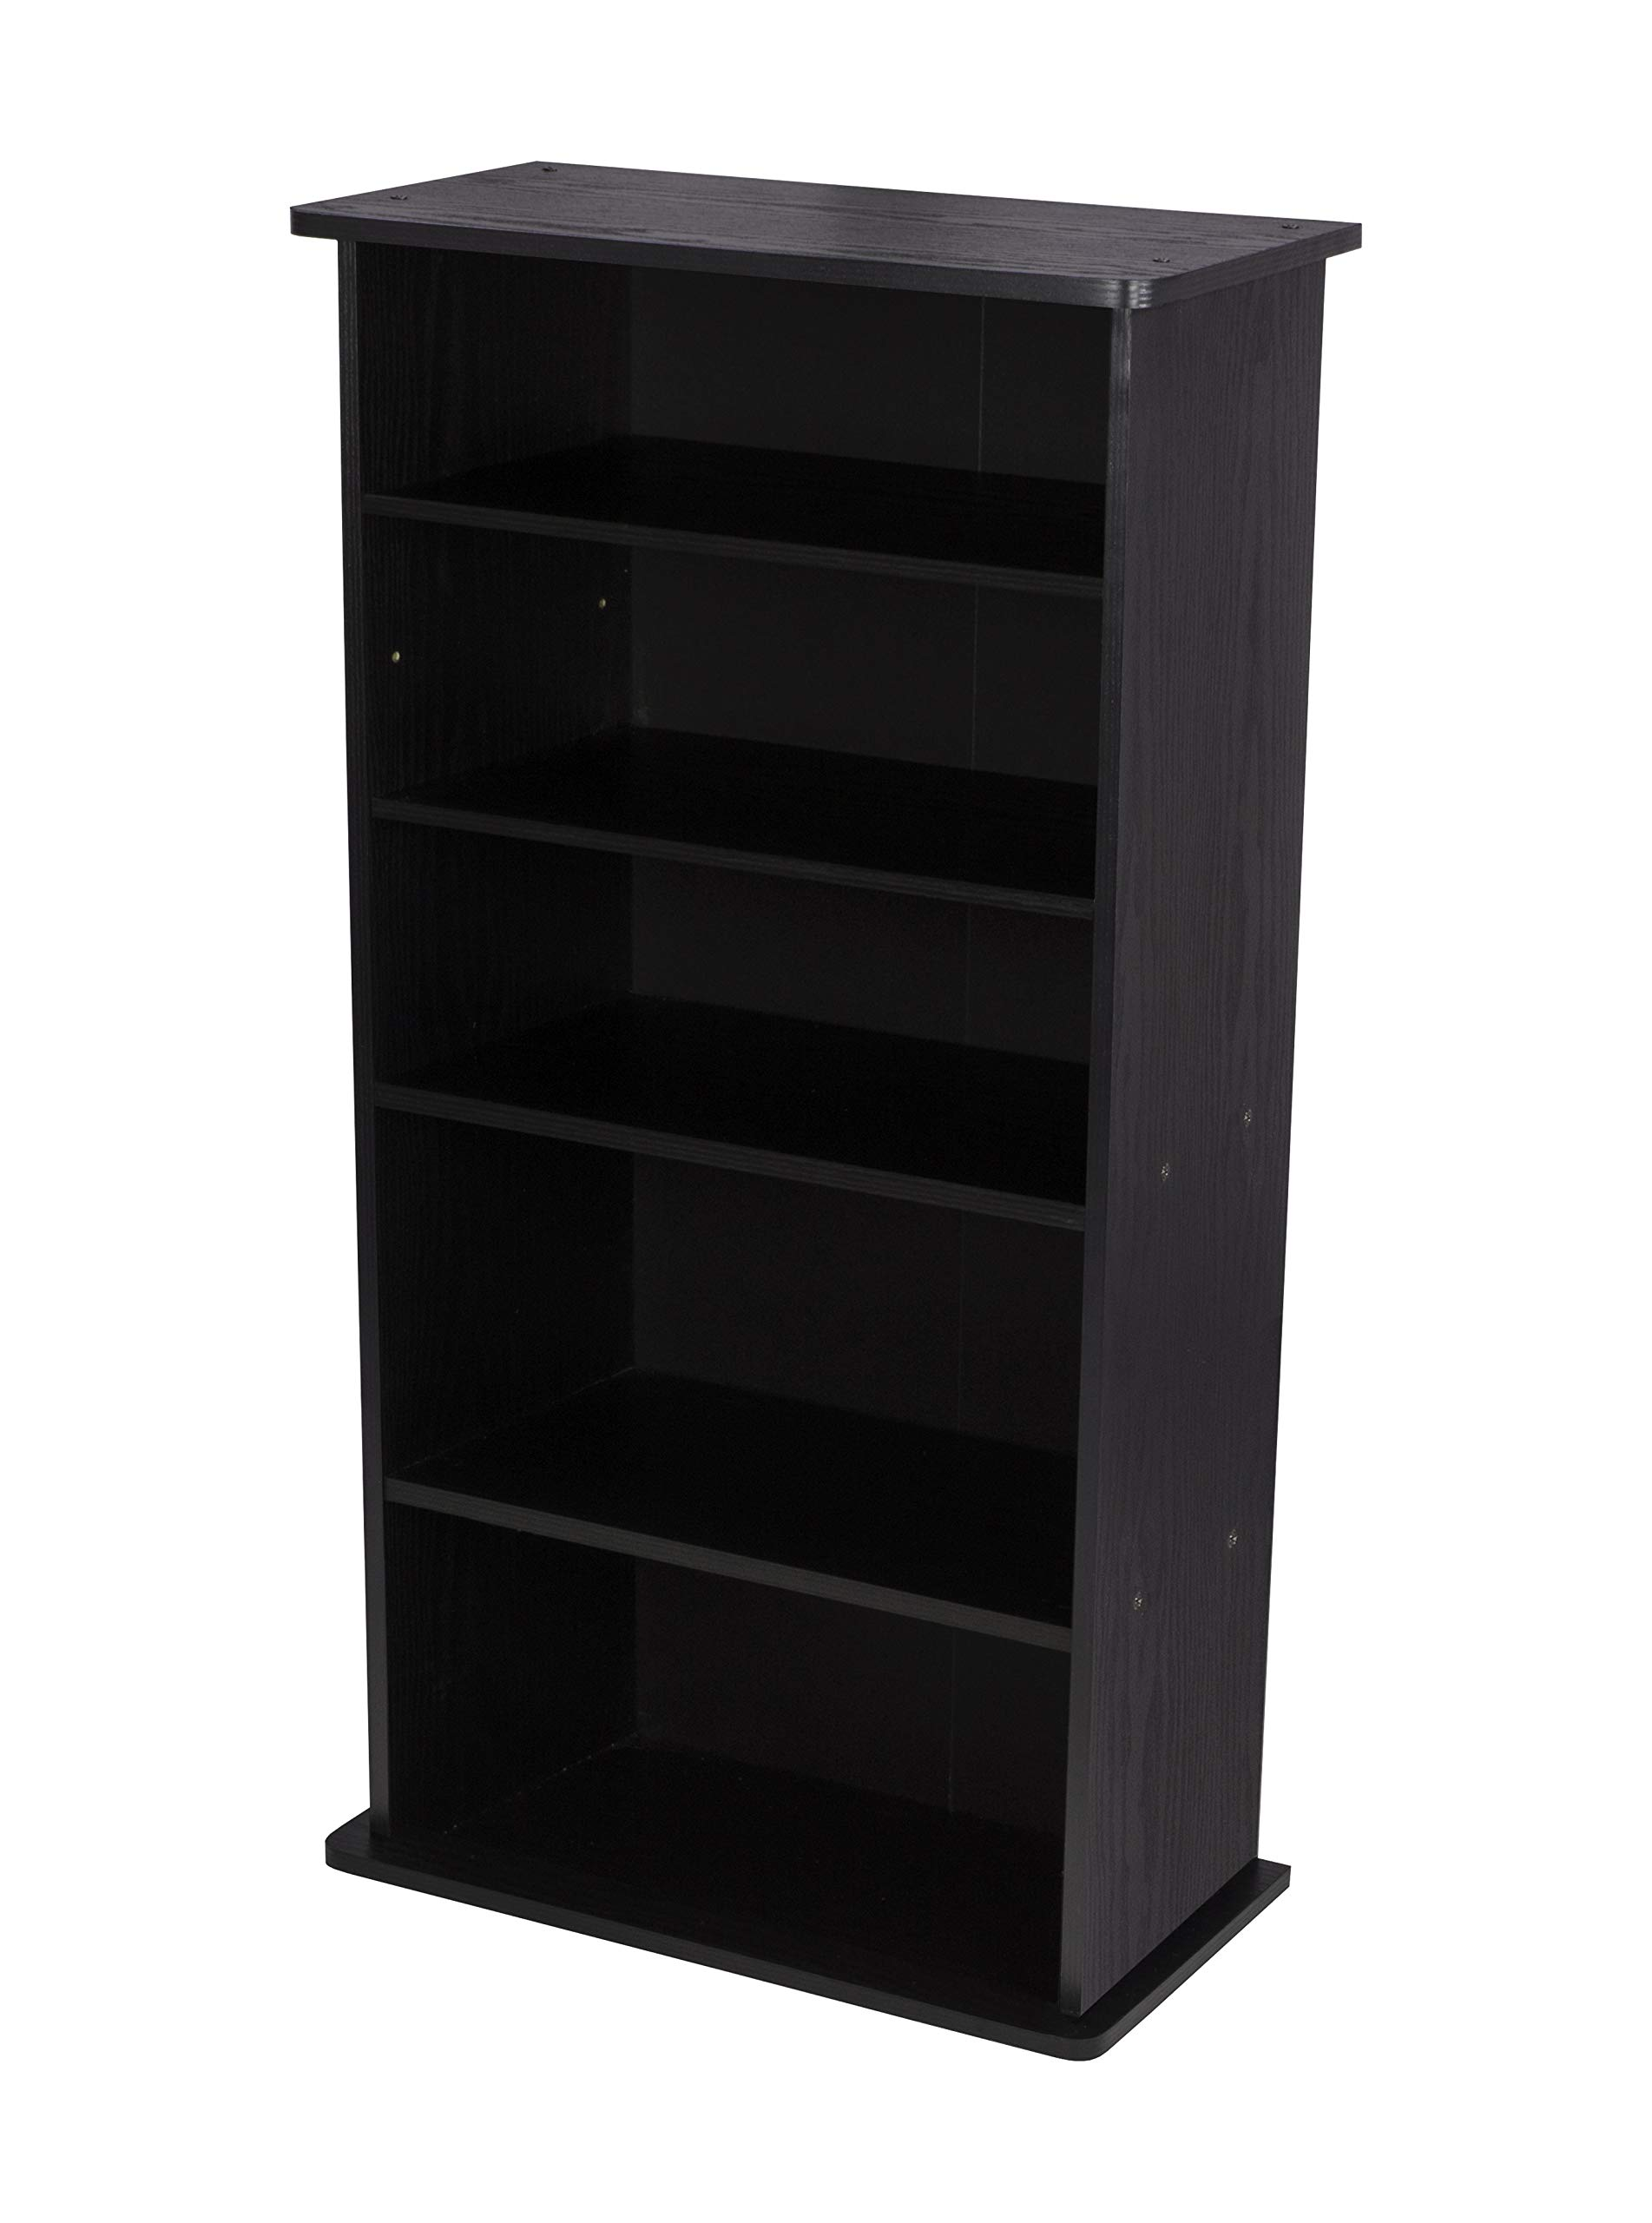 Atlantic Drawbridge XL Media Cabinet - Holds 240 CDs, Wide Stable Base, 4 Adjustable, 2 Fixed Deeper Shelves, 36 X 19 X 10 inch PN37936251 in Black by Atlantic